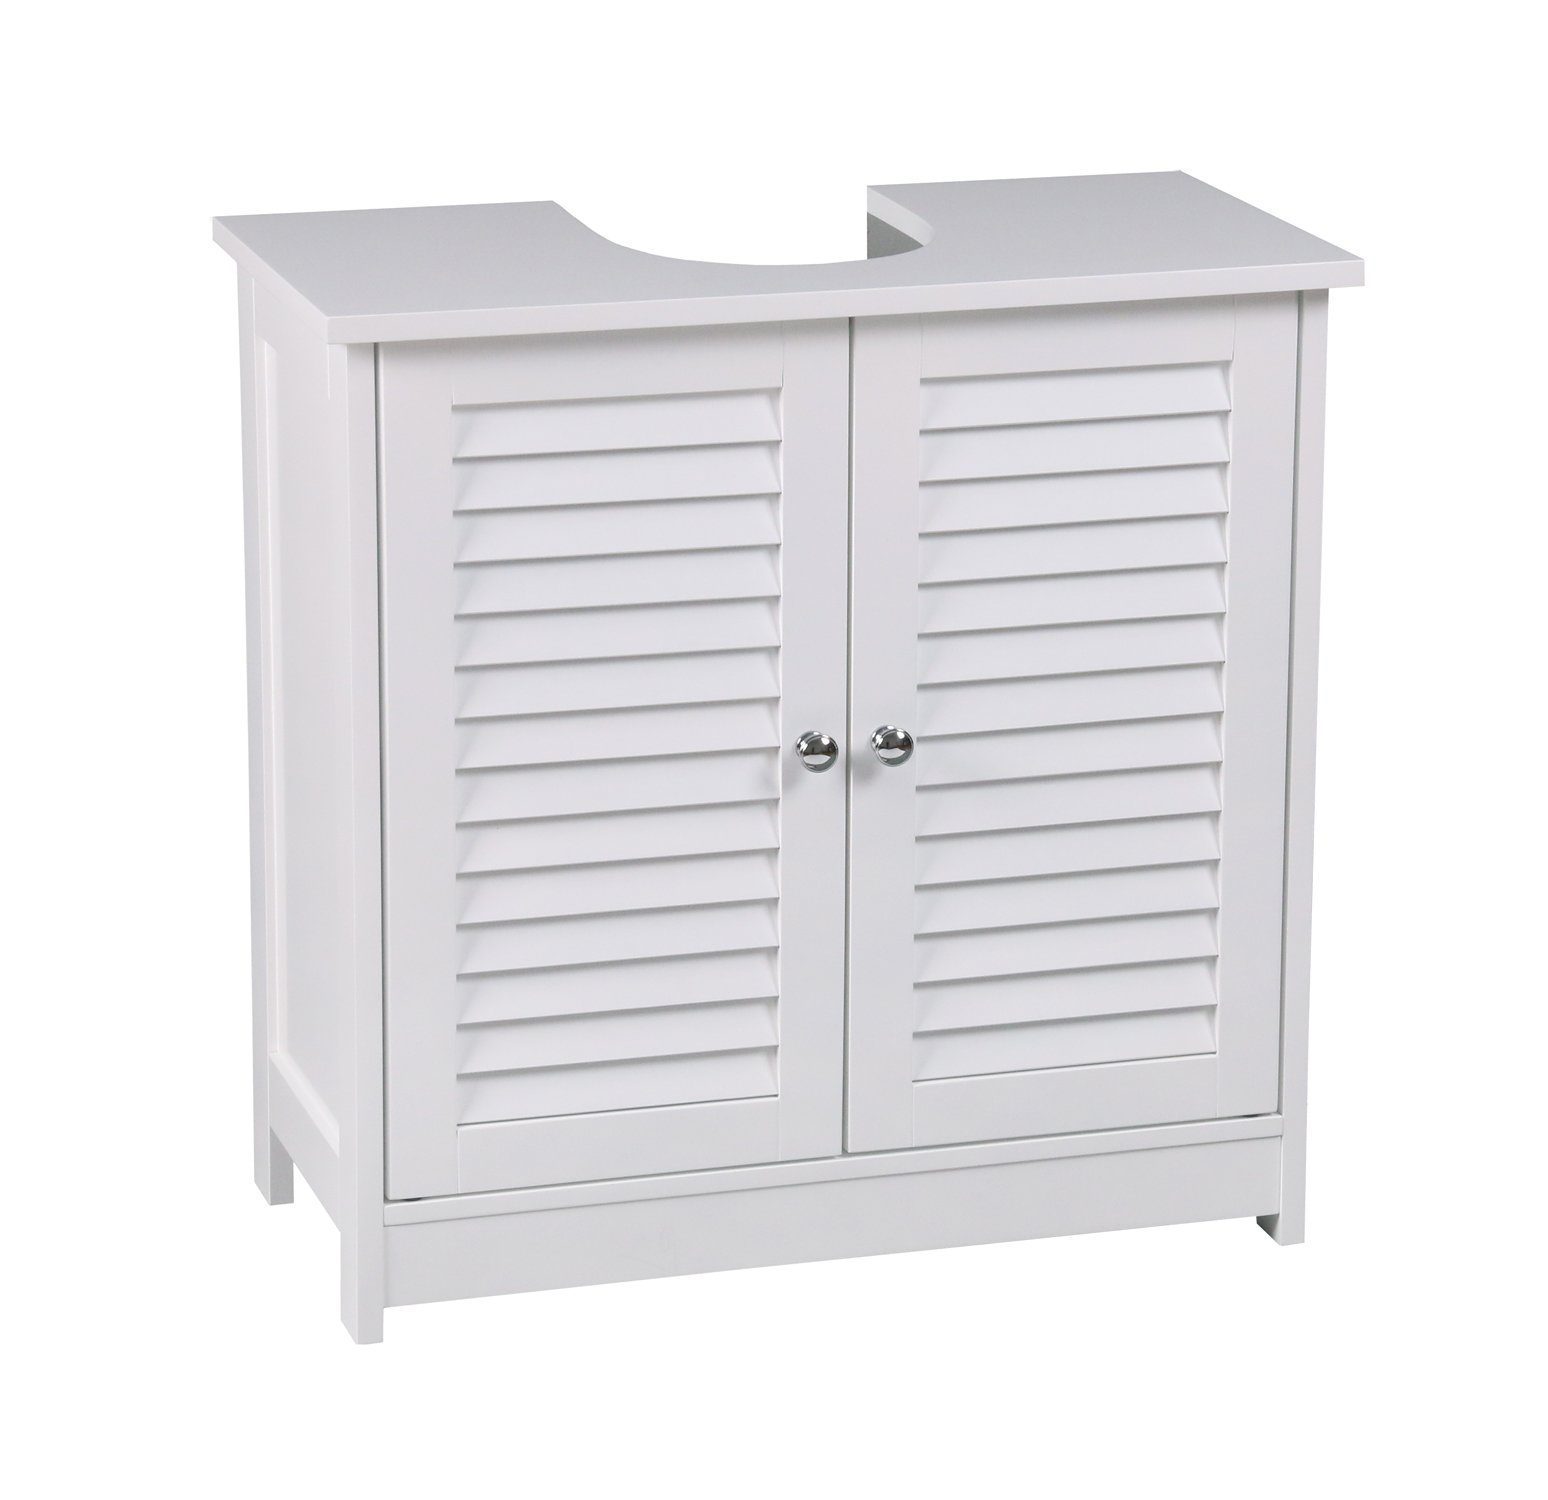 Aspect oslo bathroom storage under sink cabinet white 60 - Under sink bathroom storage cabinet ...